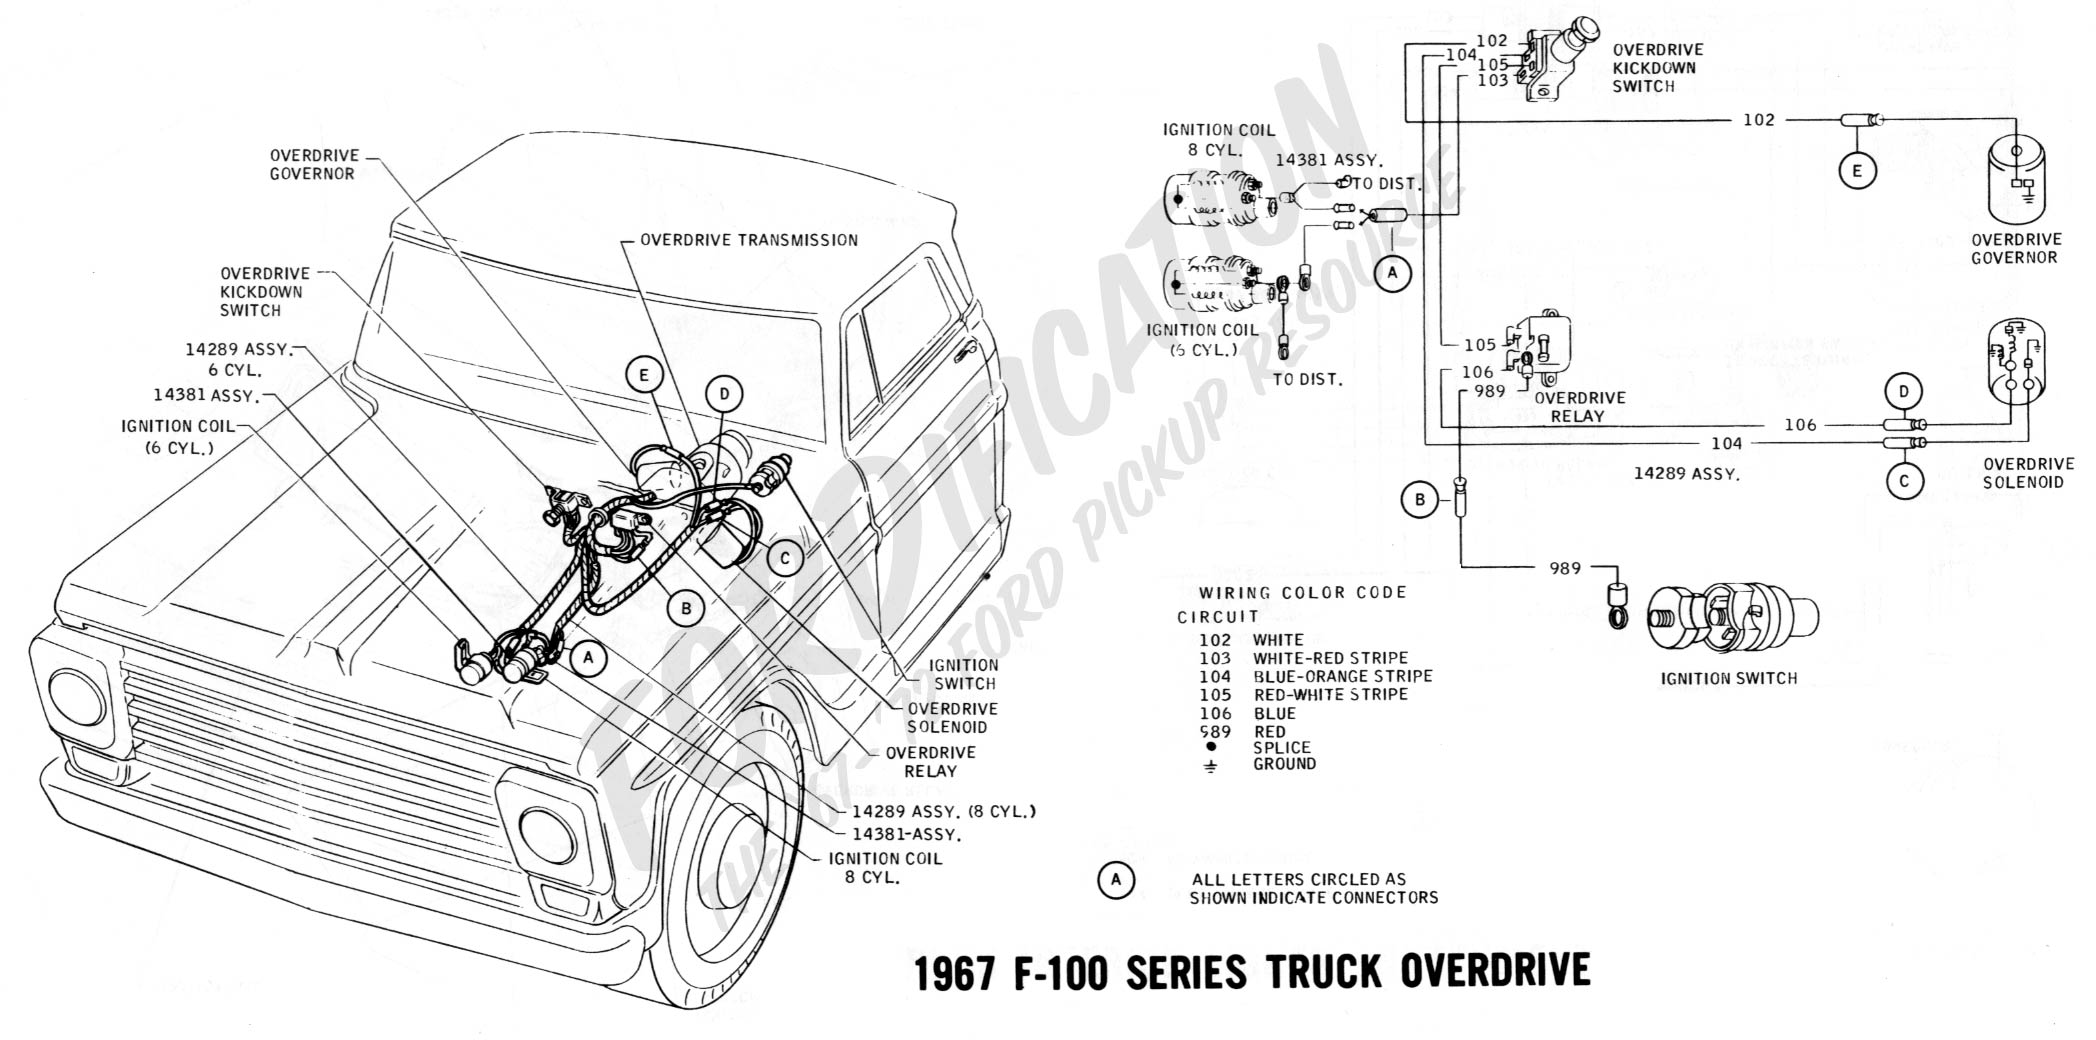 wiring 1967overdrive2 ford truck technical drawings and schematics section h wiring Ford Tractor Electrical Wiring Diagram at panicattacktreatment.co